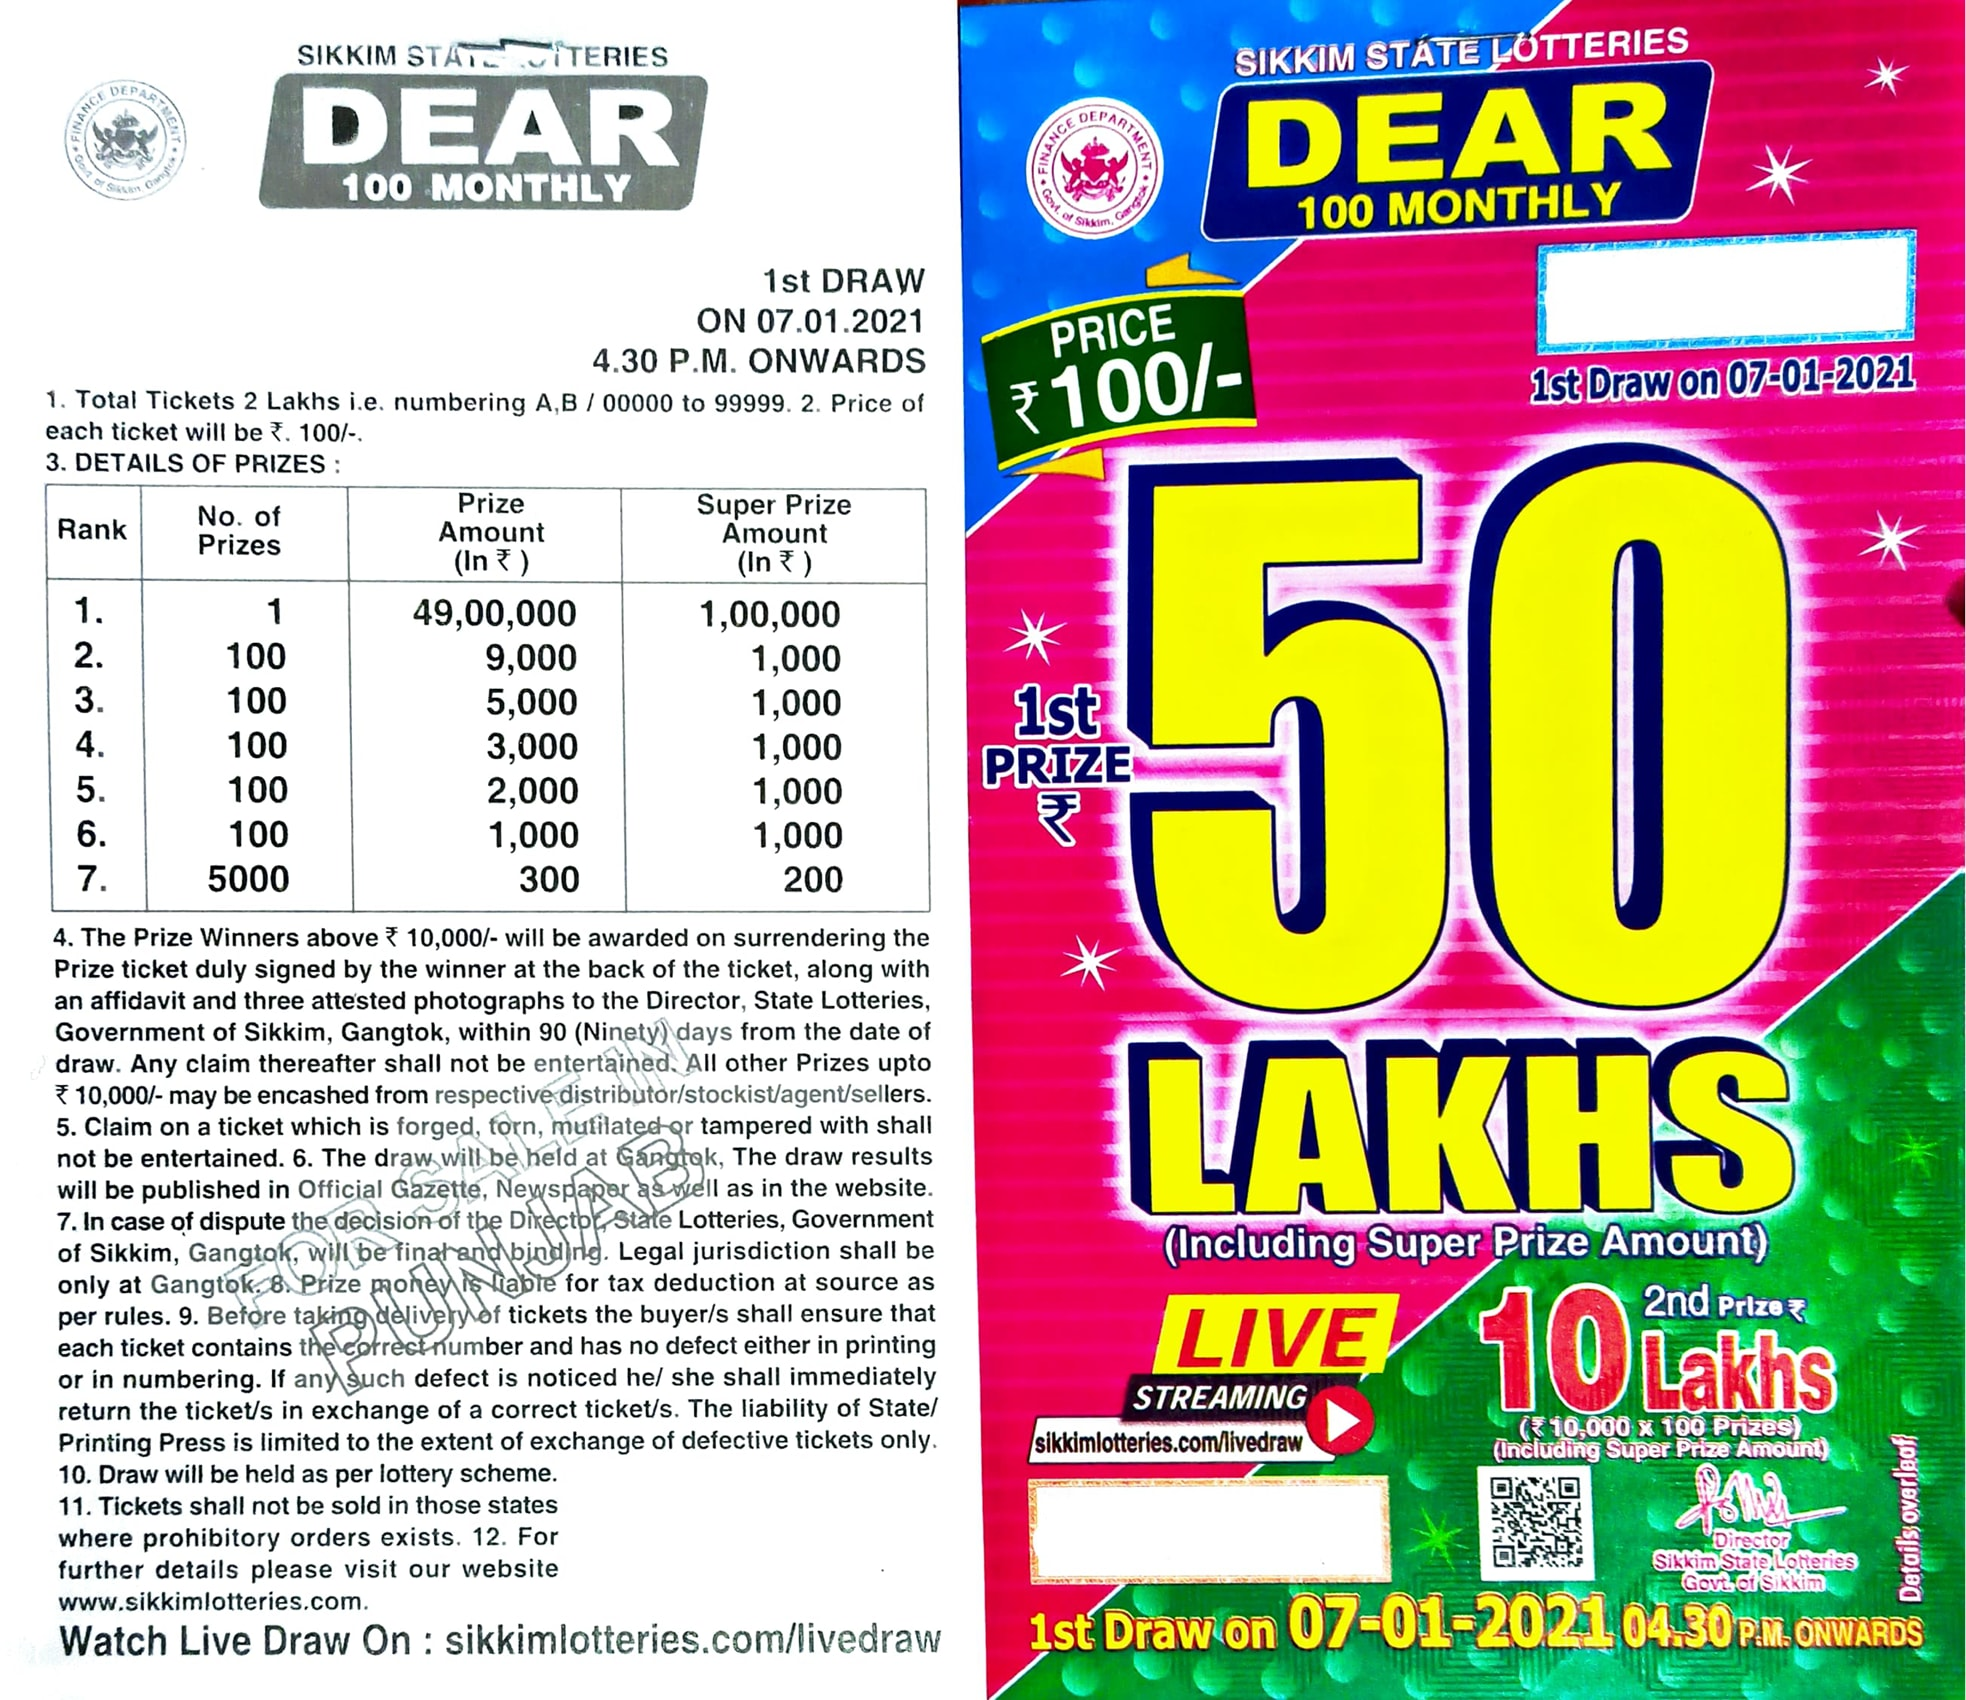 Sikkim_state_lotteries_dear_100_monthly_07.01.2021